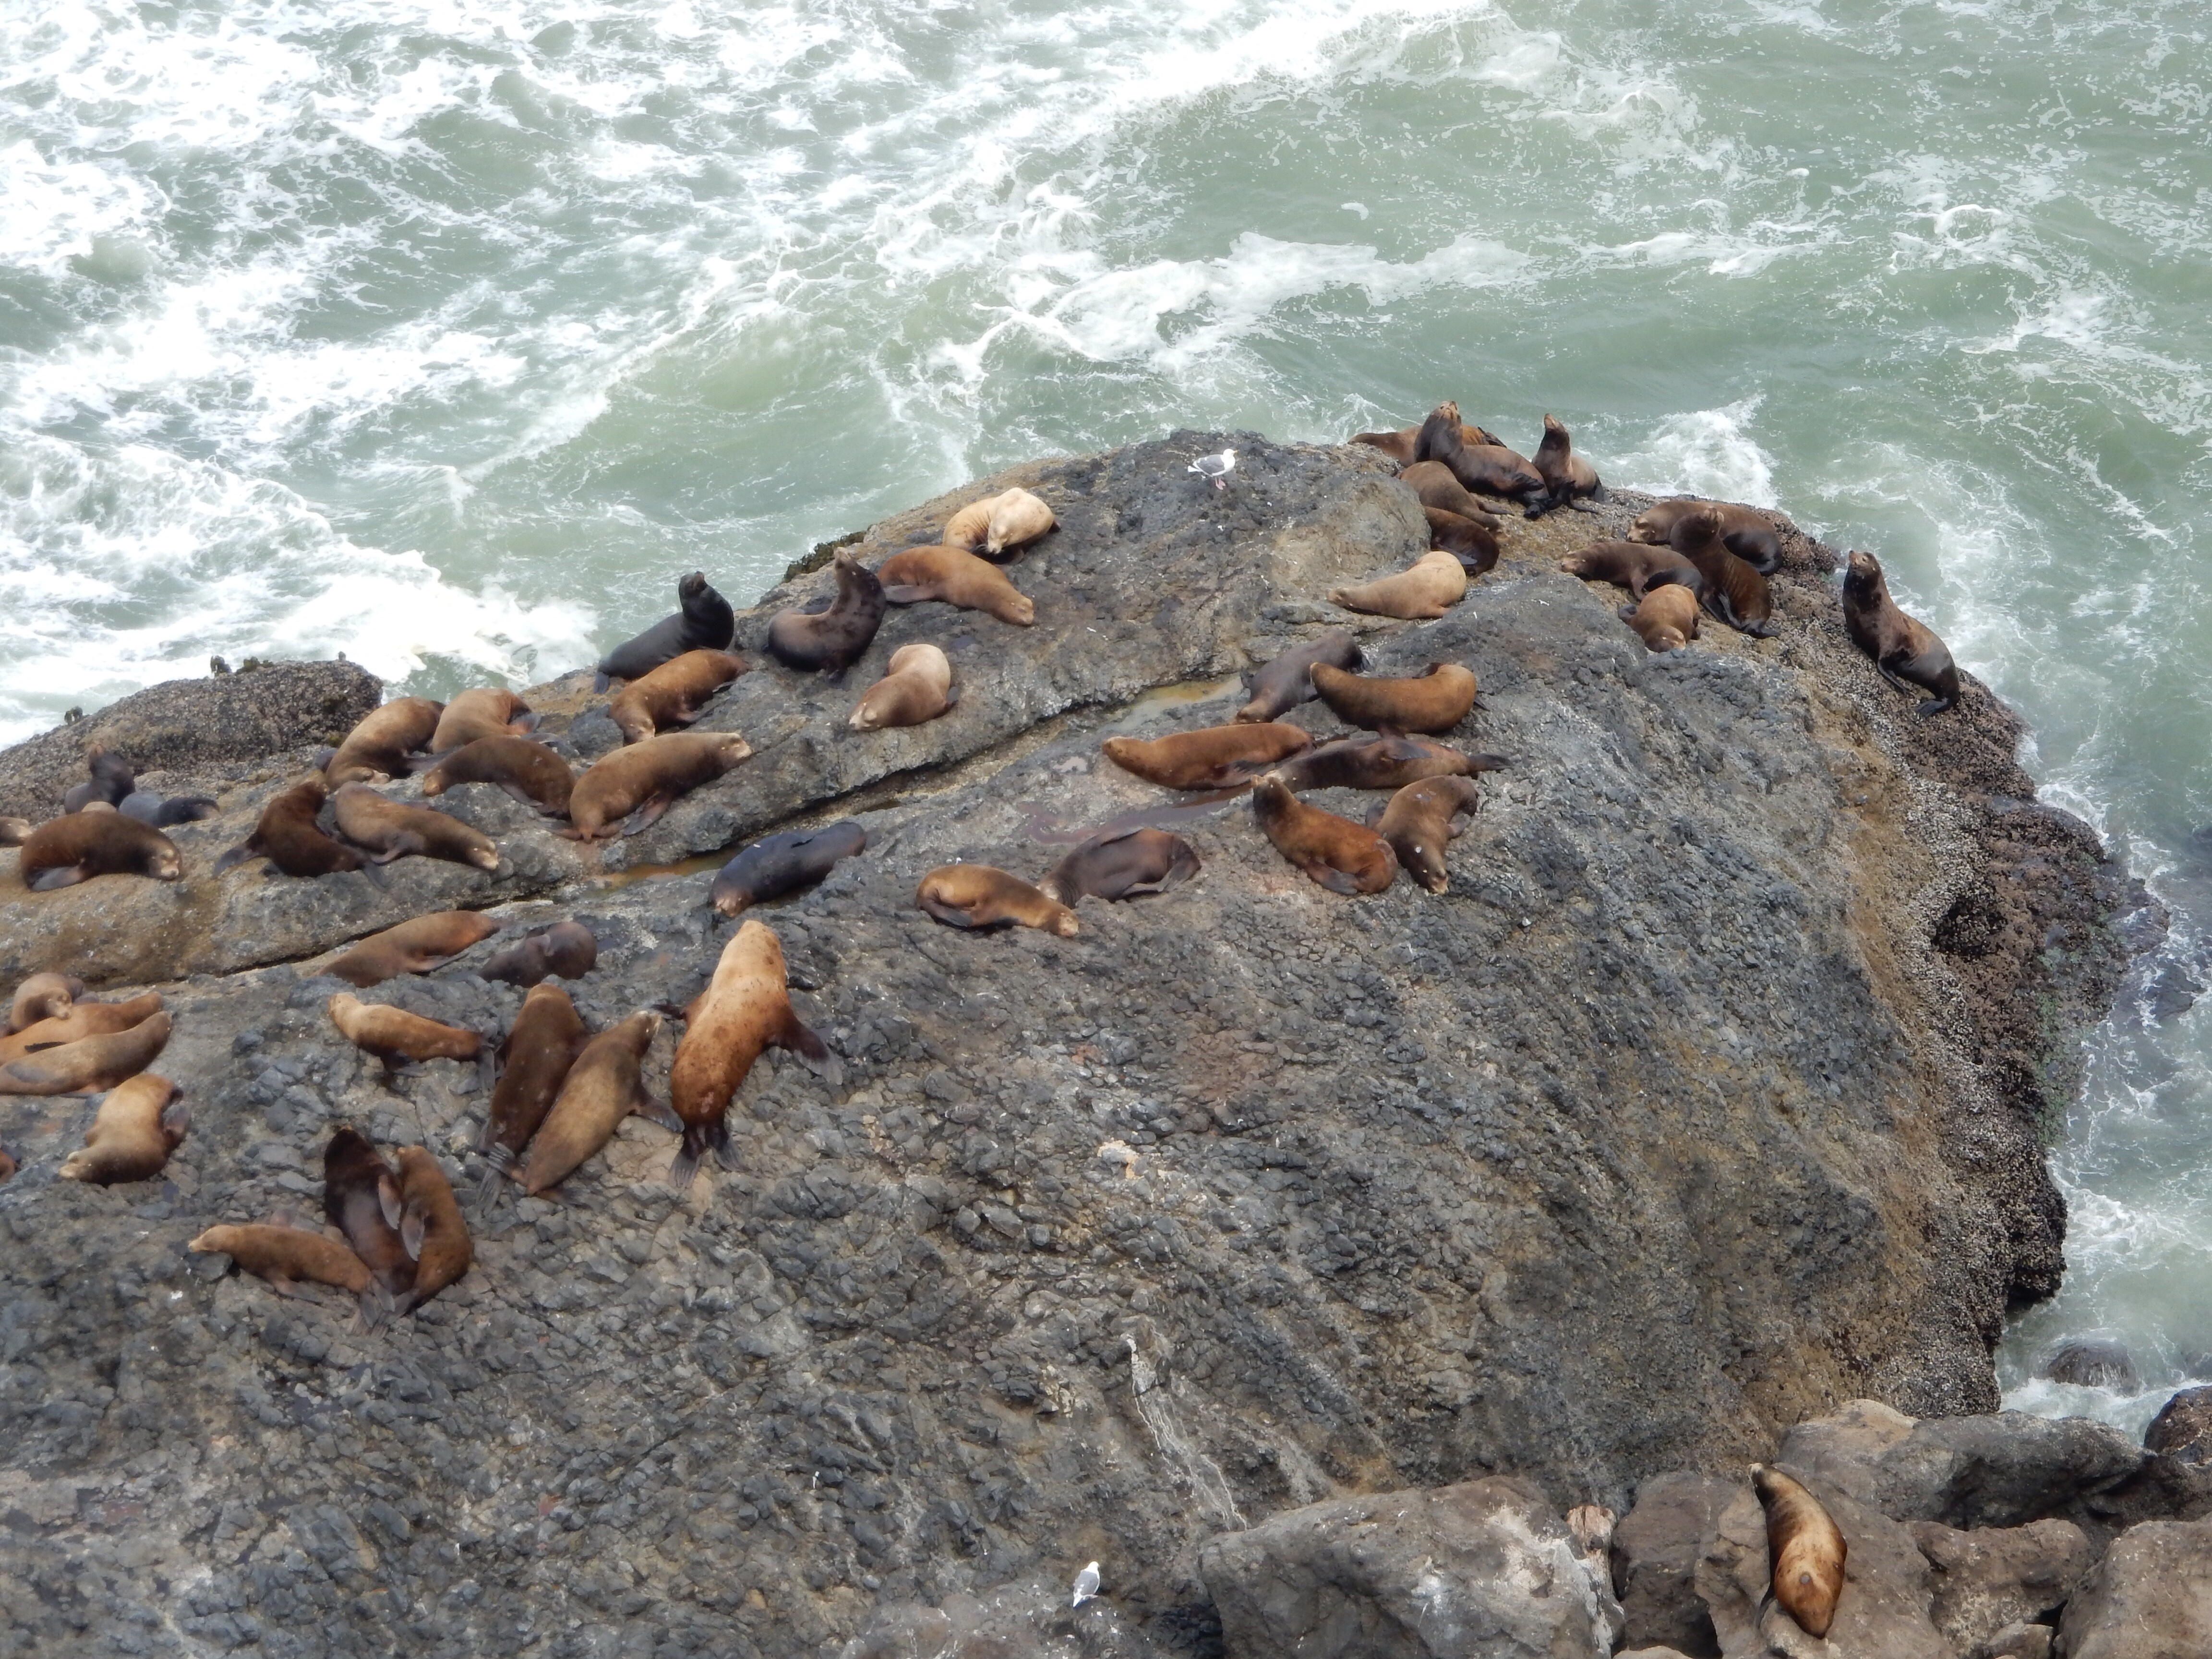 A closer look at the sea lions covering the coastal rocks south of Heceta Head Lighthouse State Park.